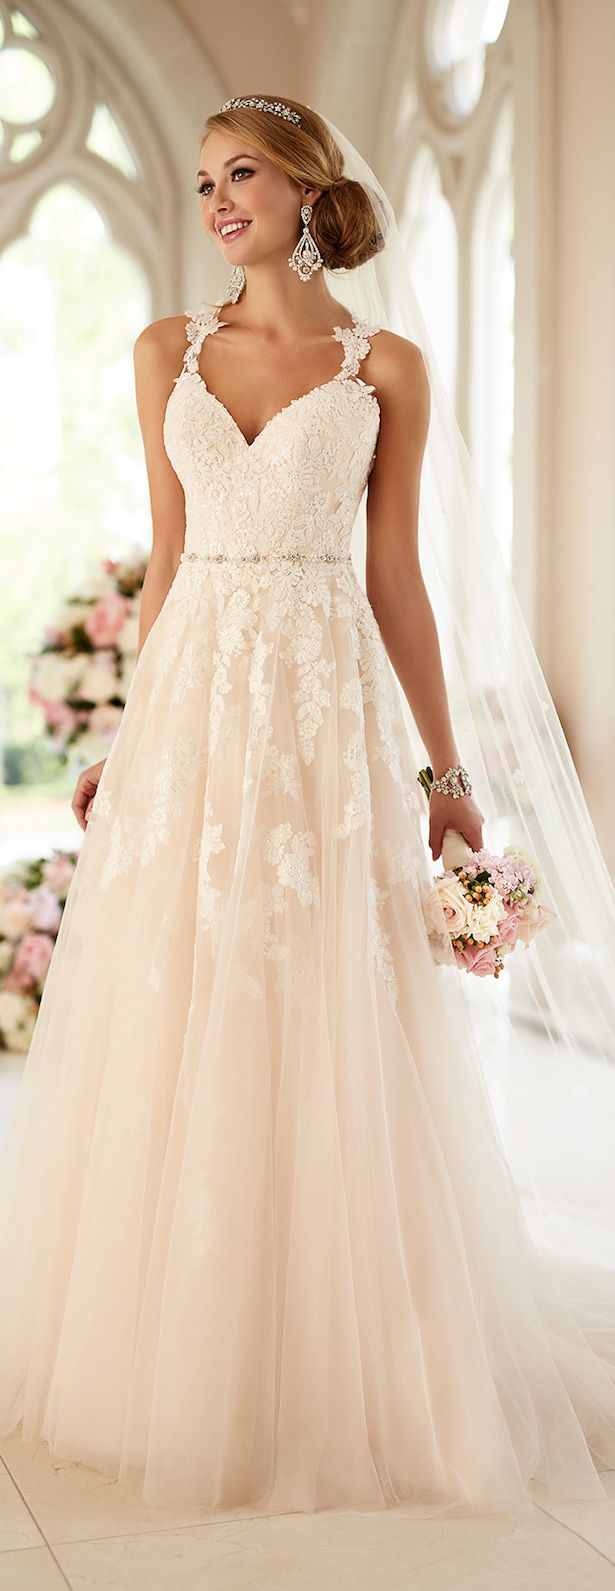 Gallery Of Wedding Dresses Has 1000+ Ideas About Wedding Dresses On Pinterest  Weddings, Bridal